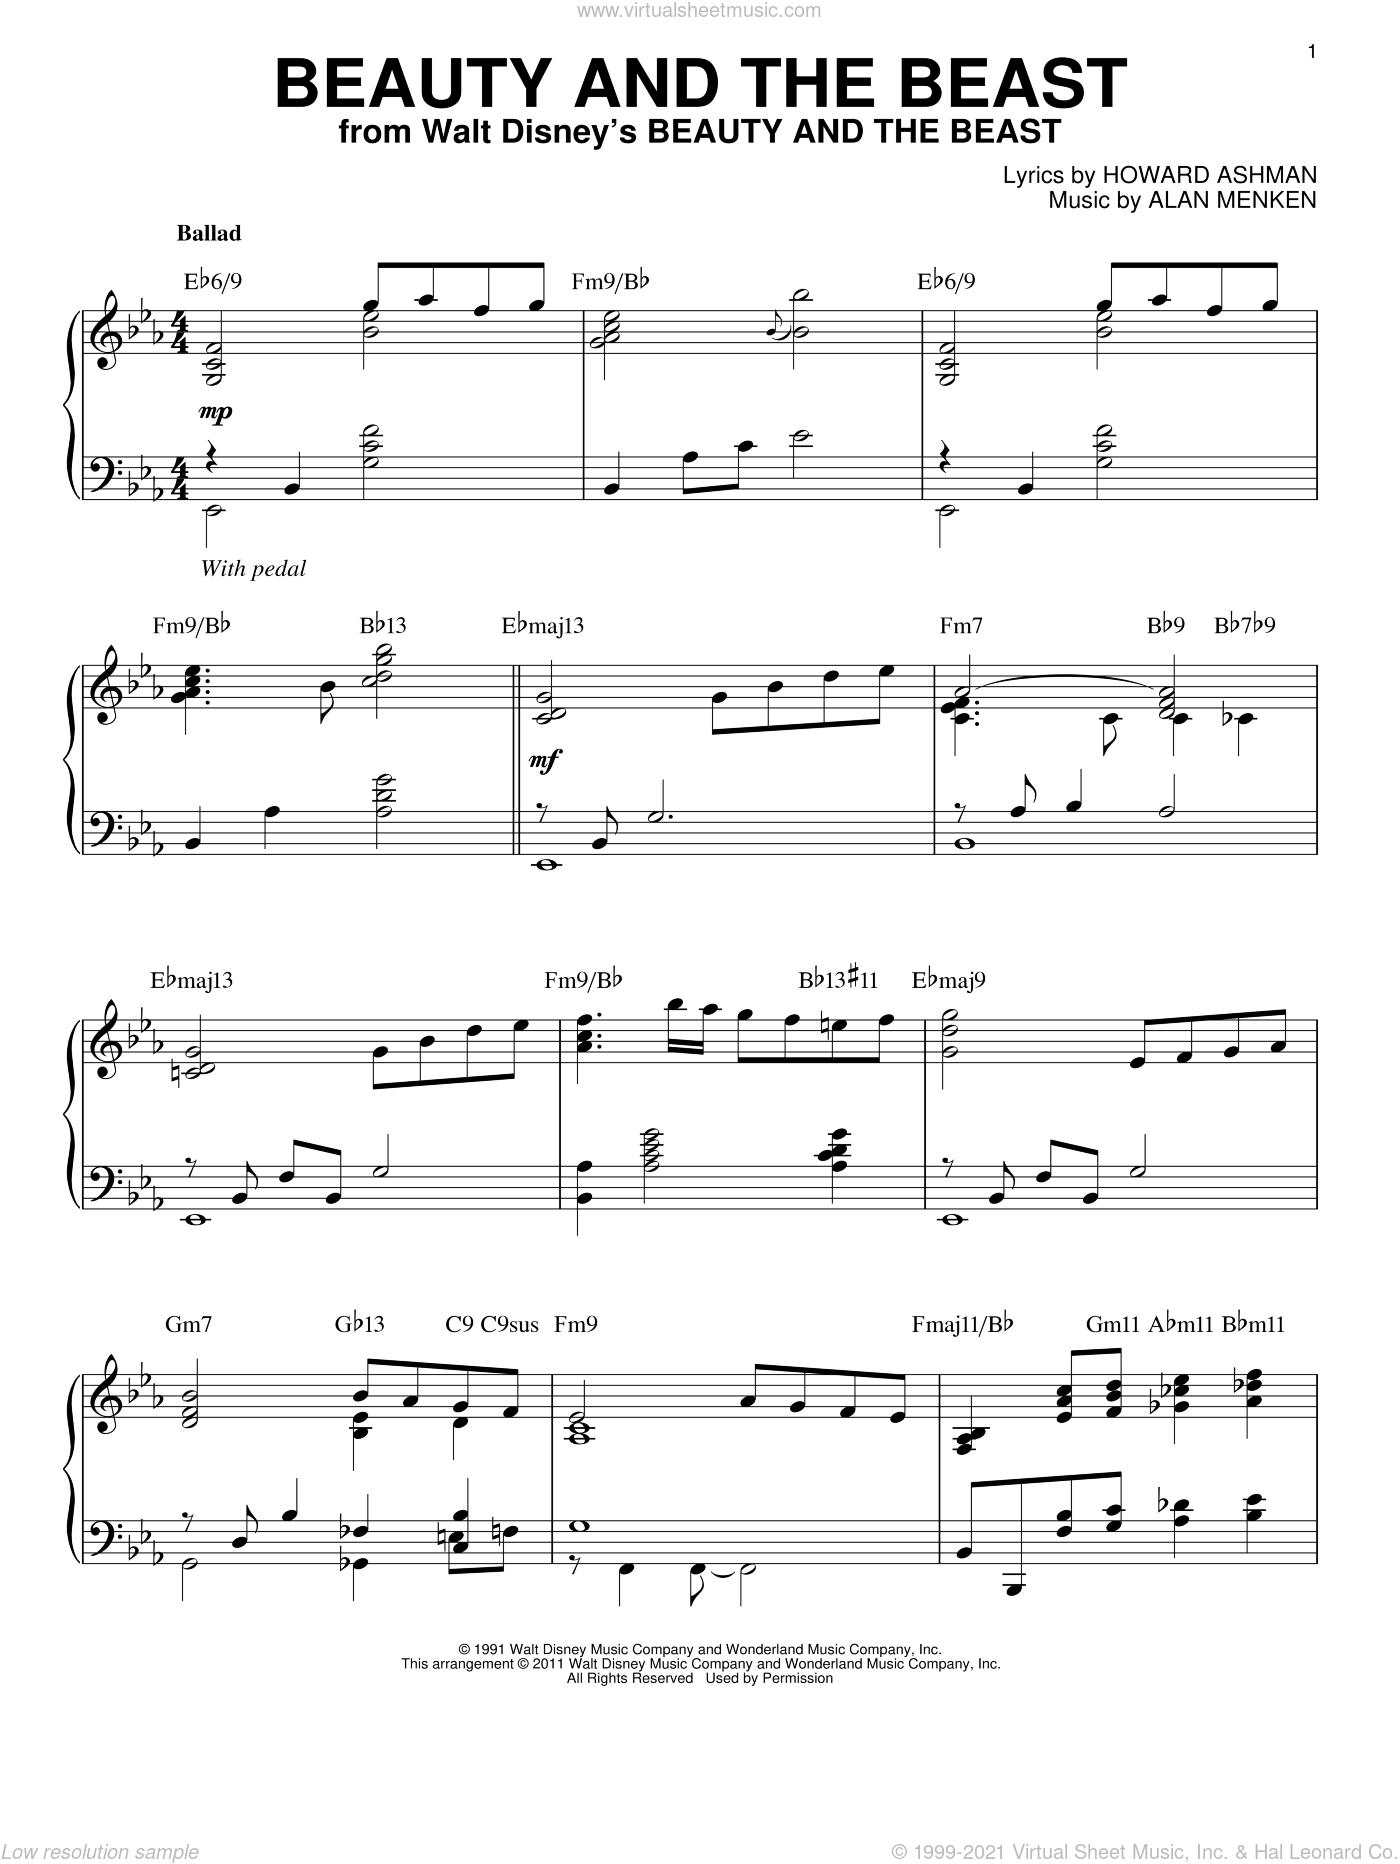 Beauty And The Beast sheet music for piano solo by Howard Ashman and Alan Menken. Score Image Preview.